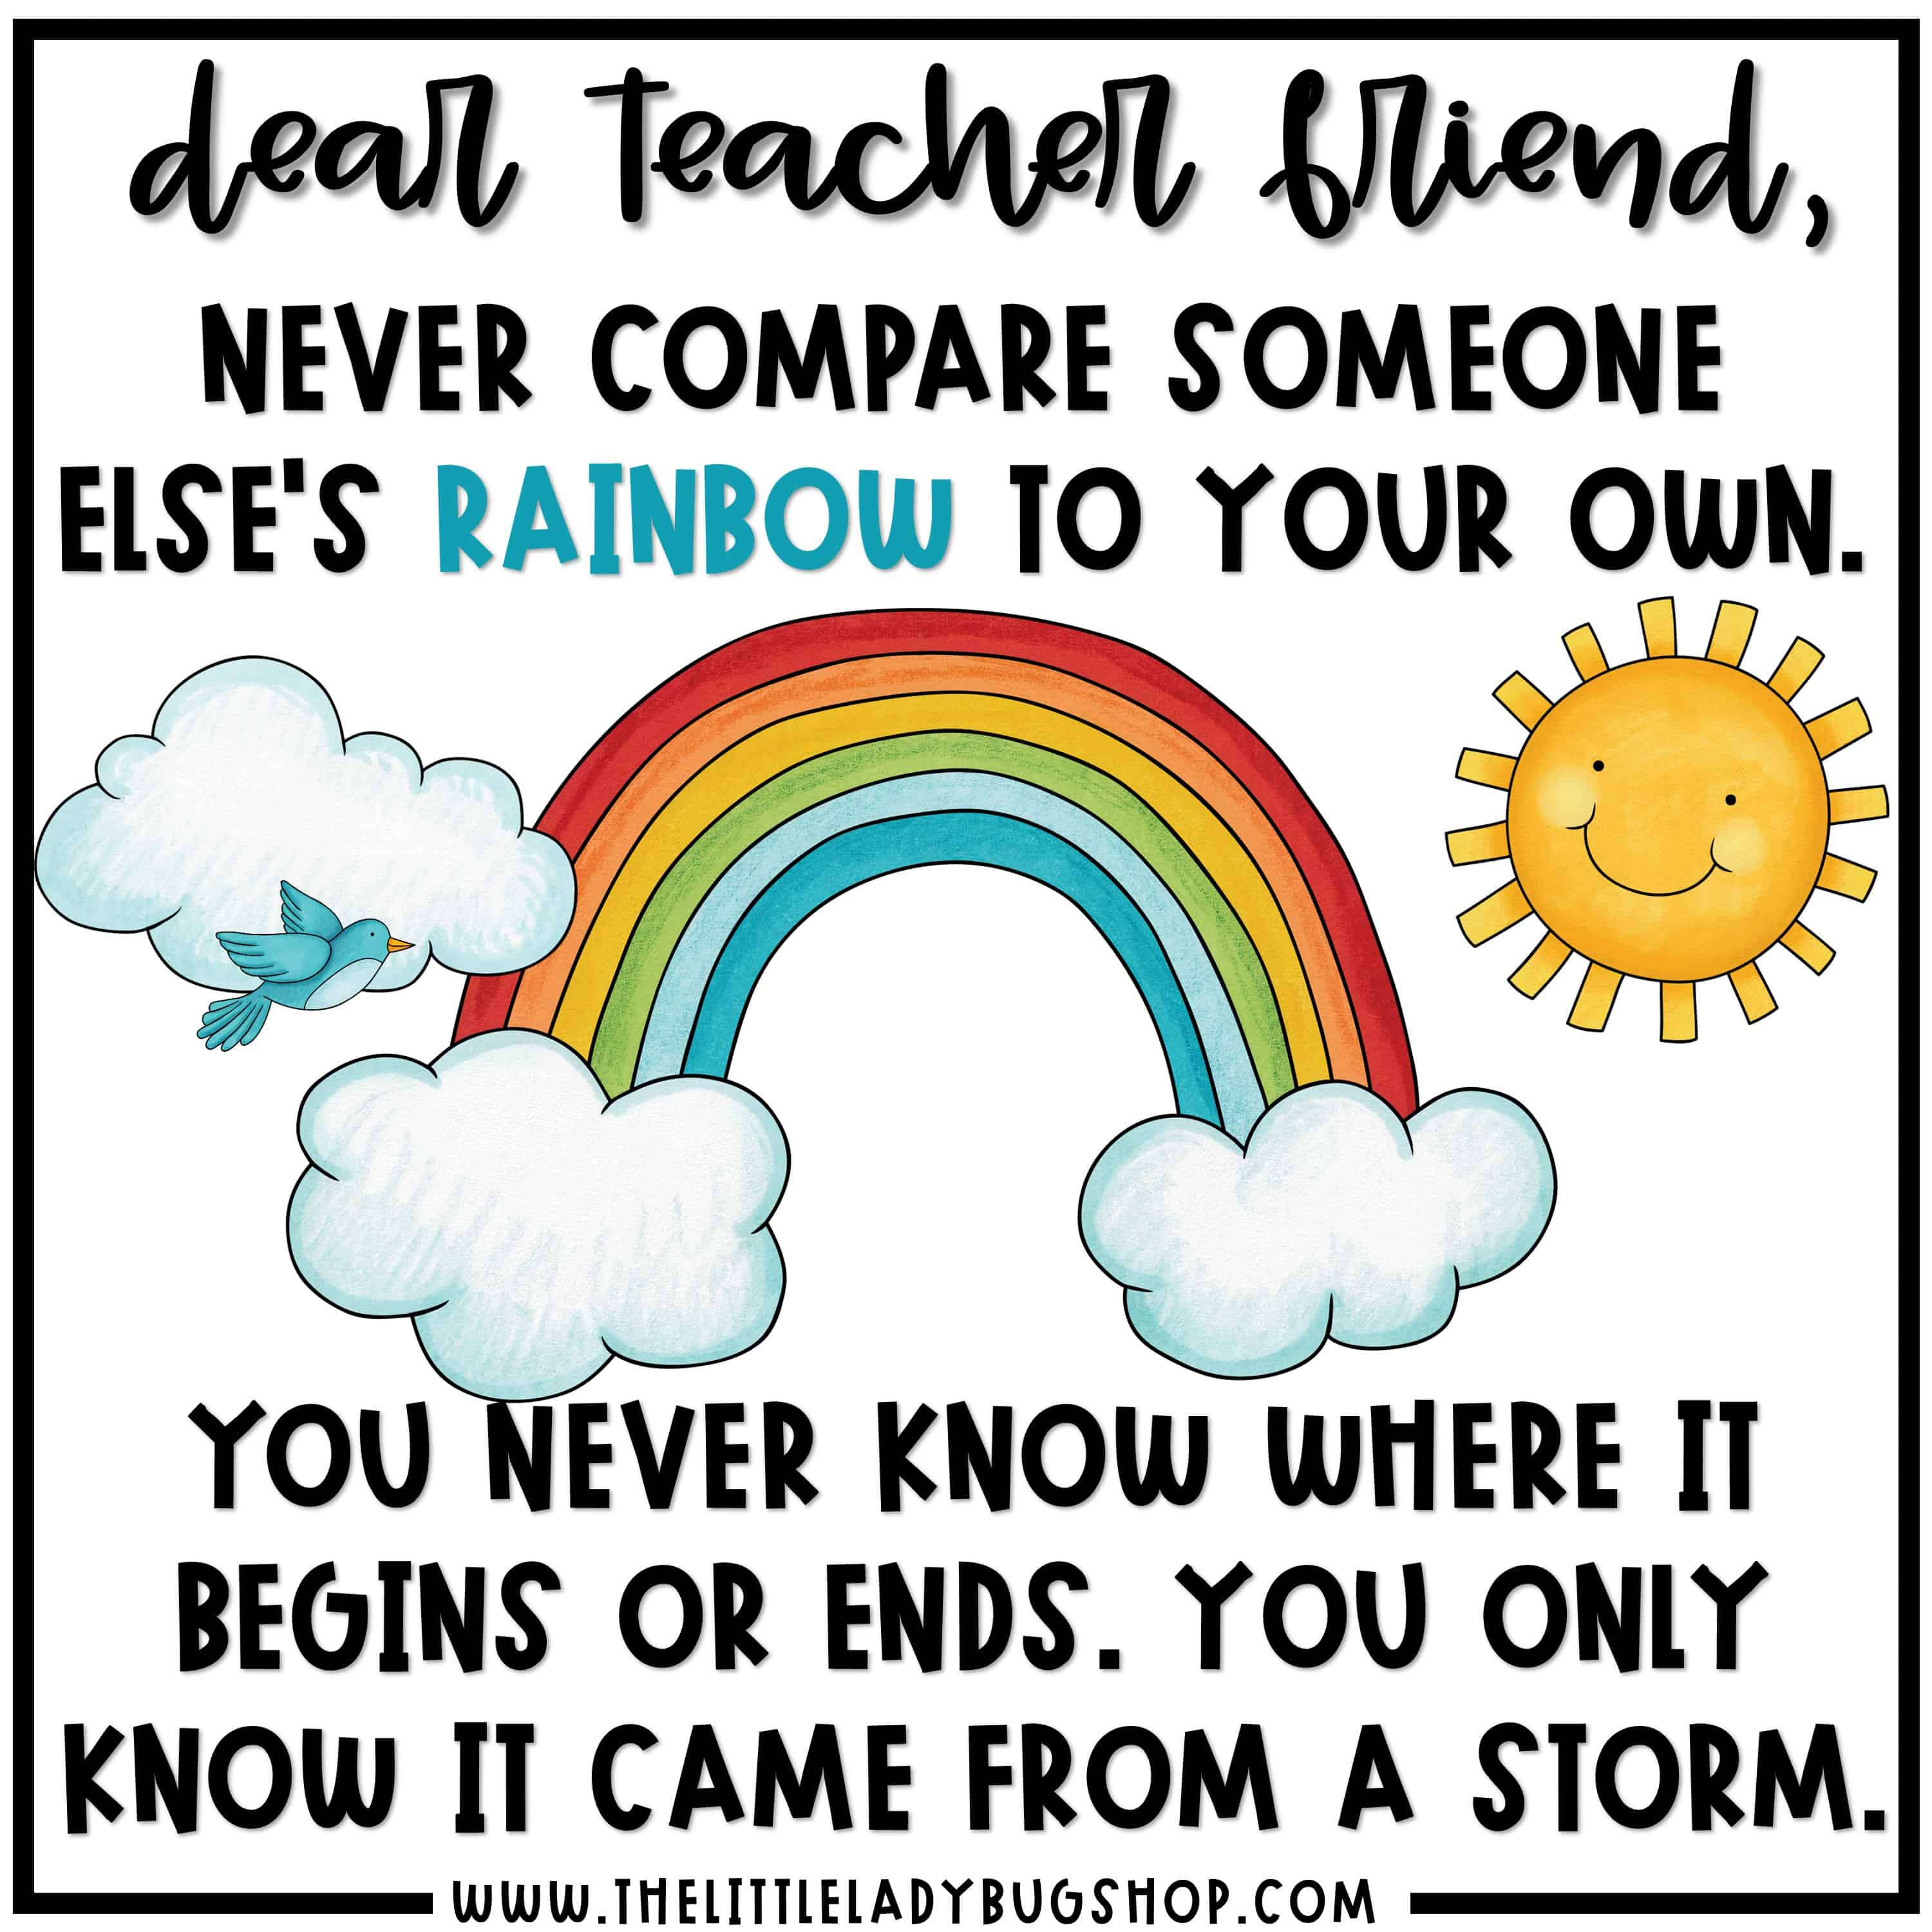 Dear Teacher Friend, do not compare yourself. Teacher Quotes